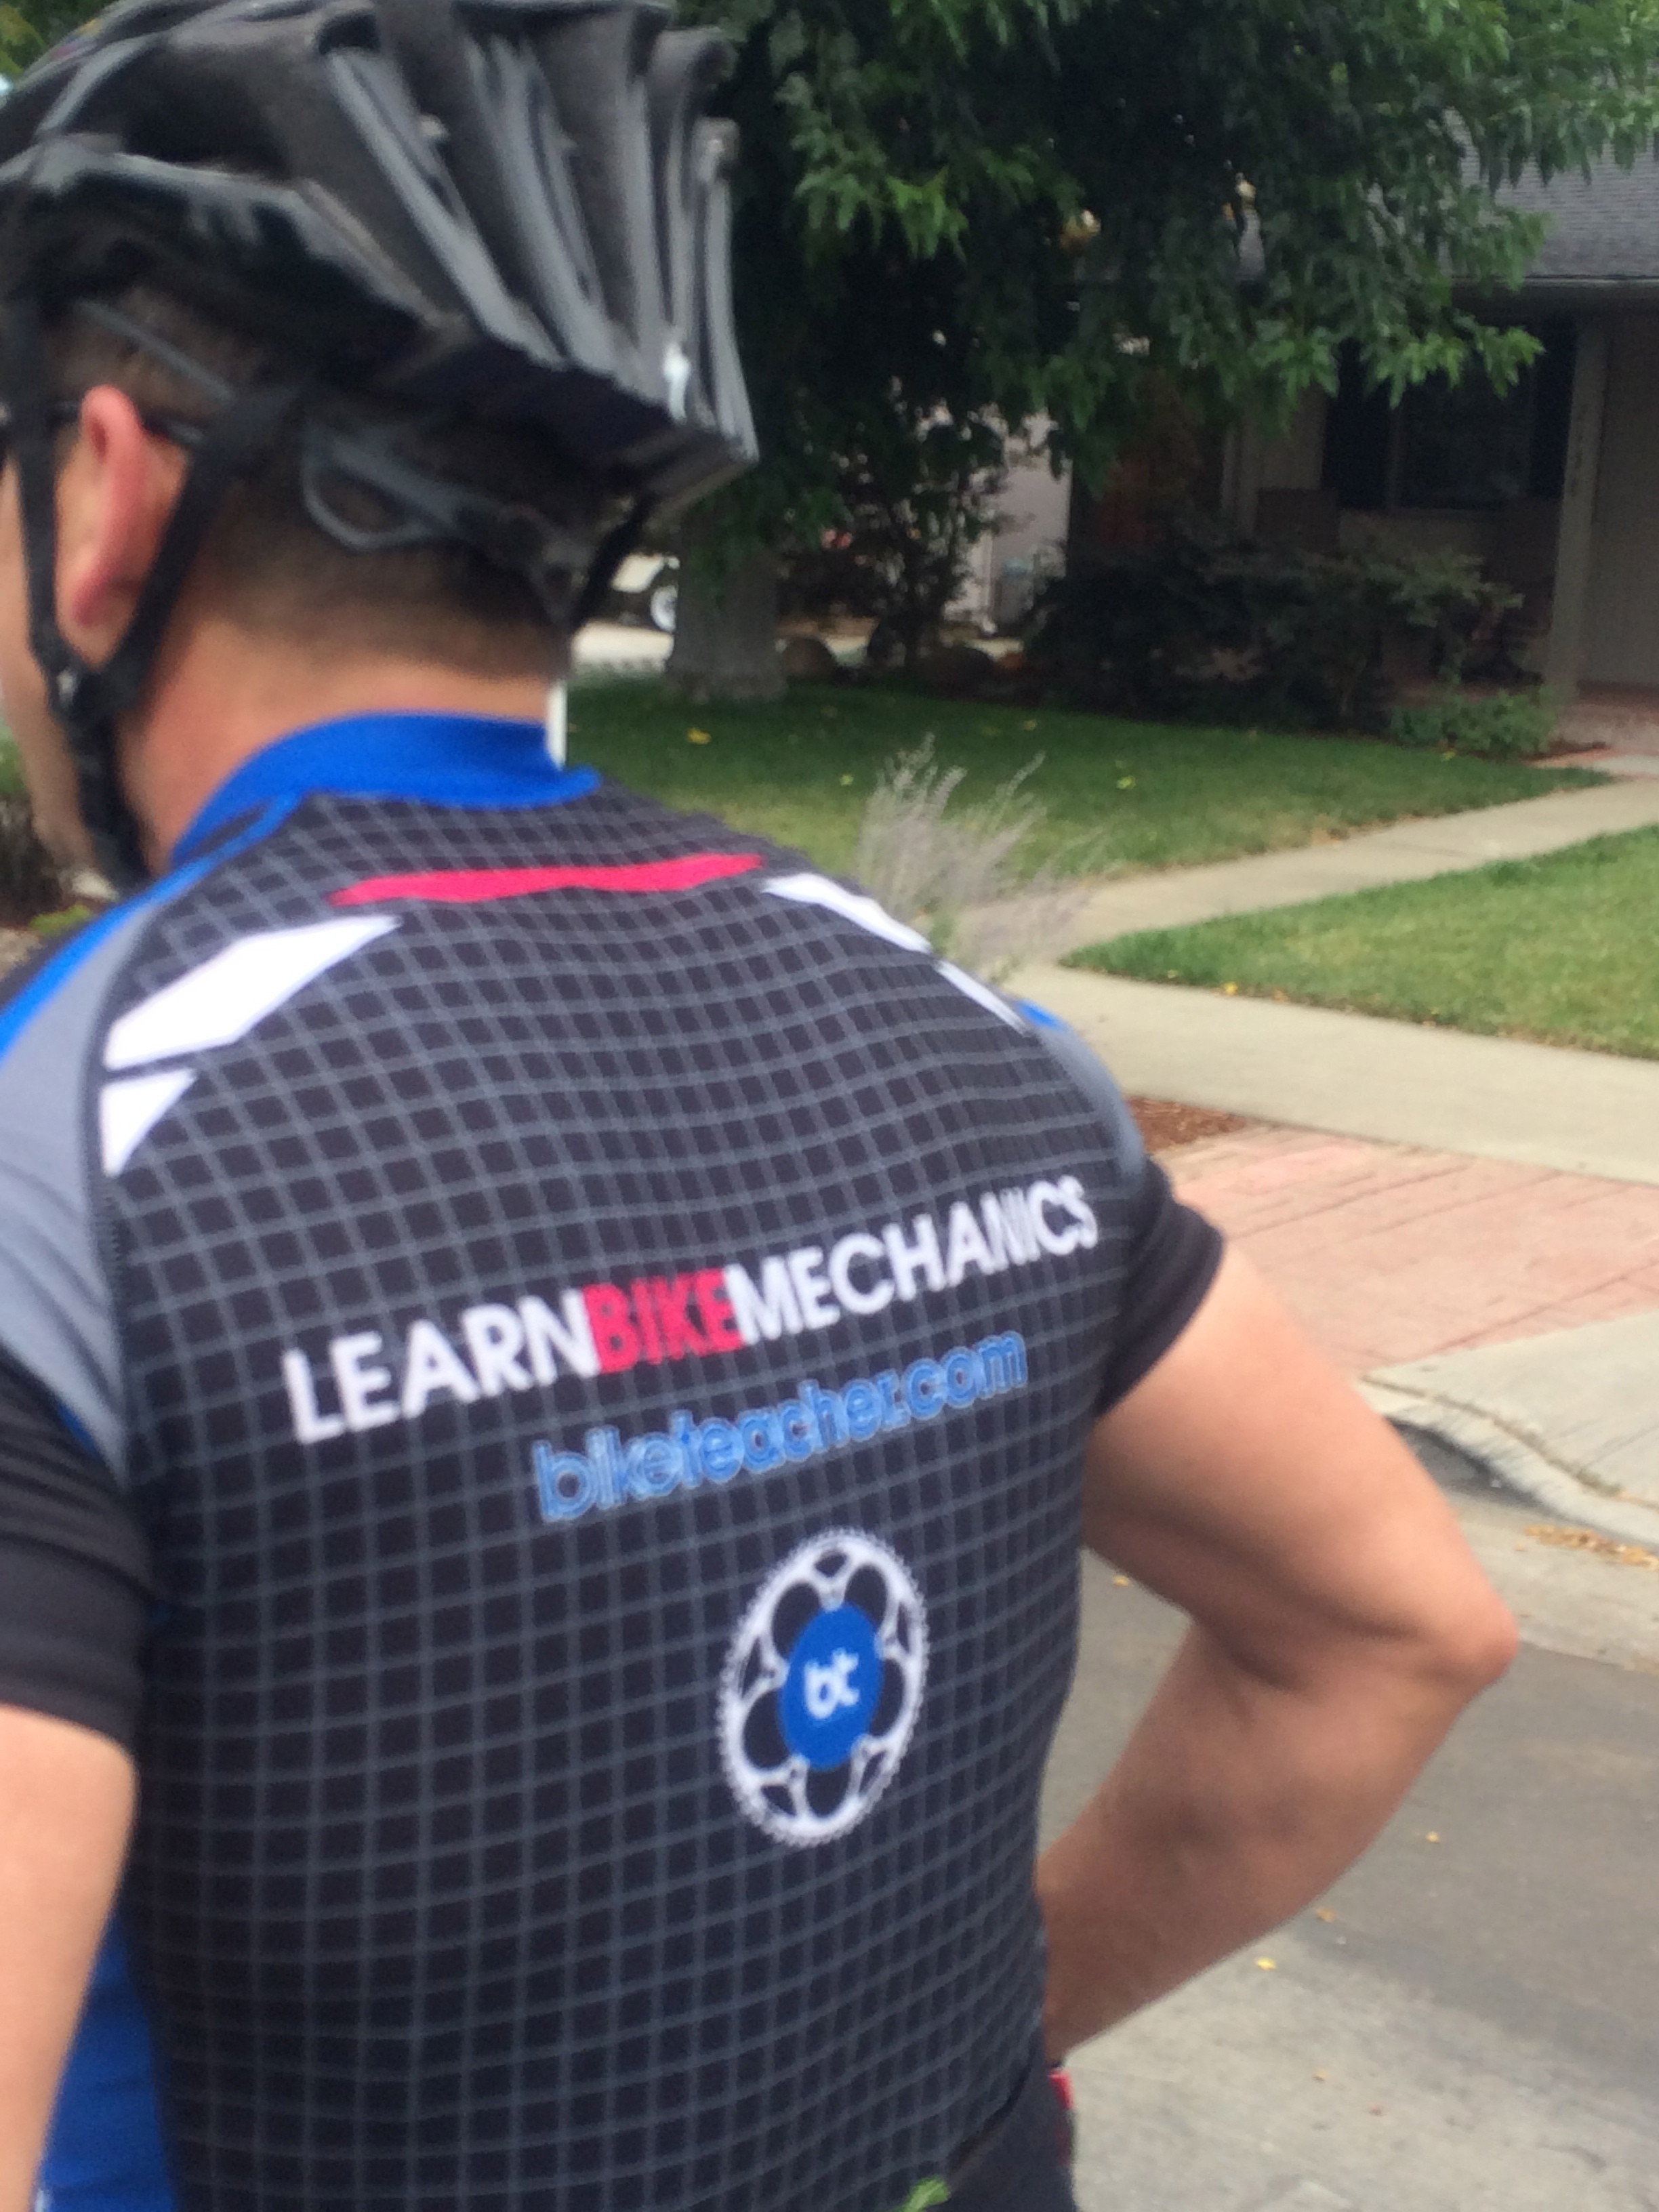 2013 learn bike mechanics jersey